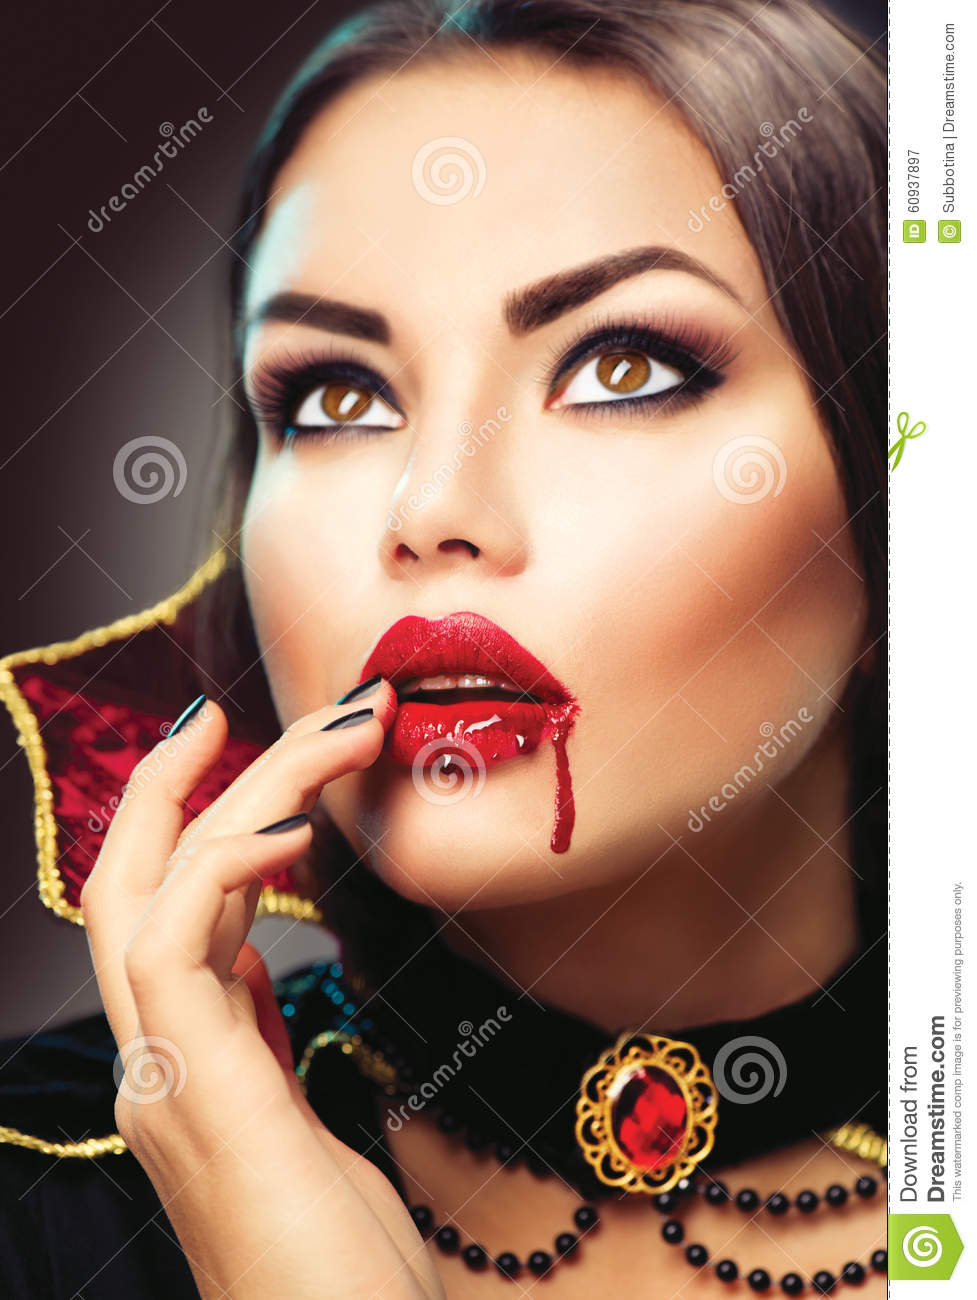 halloween vampire woman portrait beauty vampire stock photo image 60937897. Black Bedroom Furniture Sets. Home Design Ideas